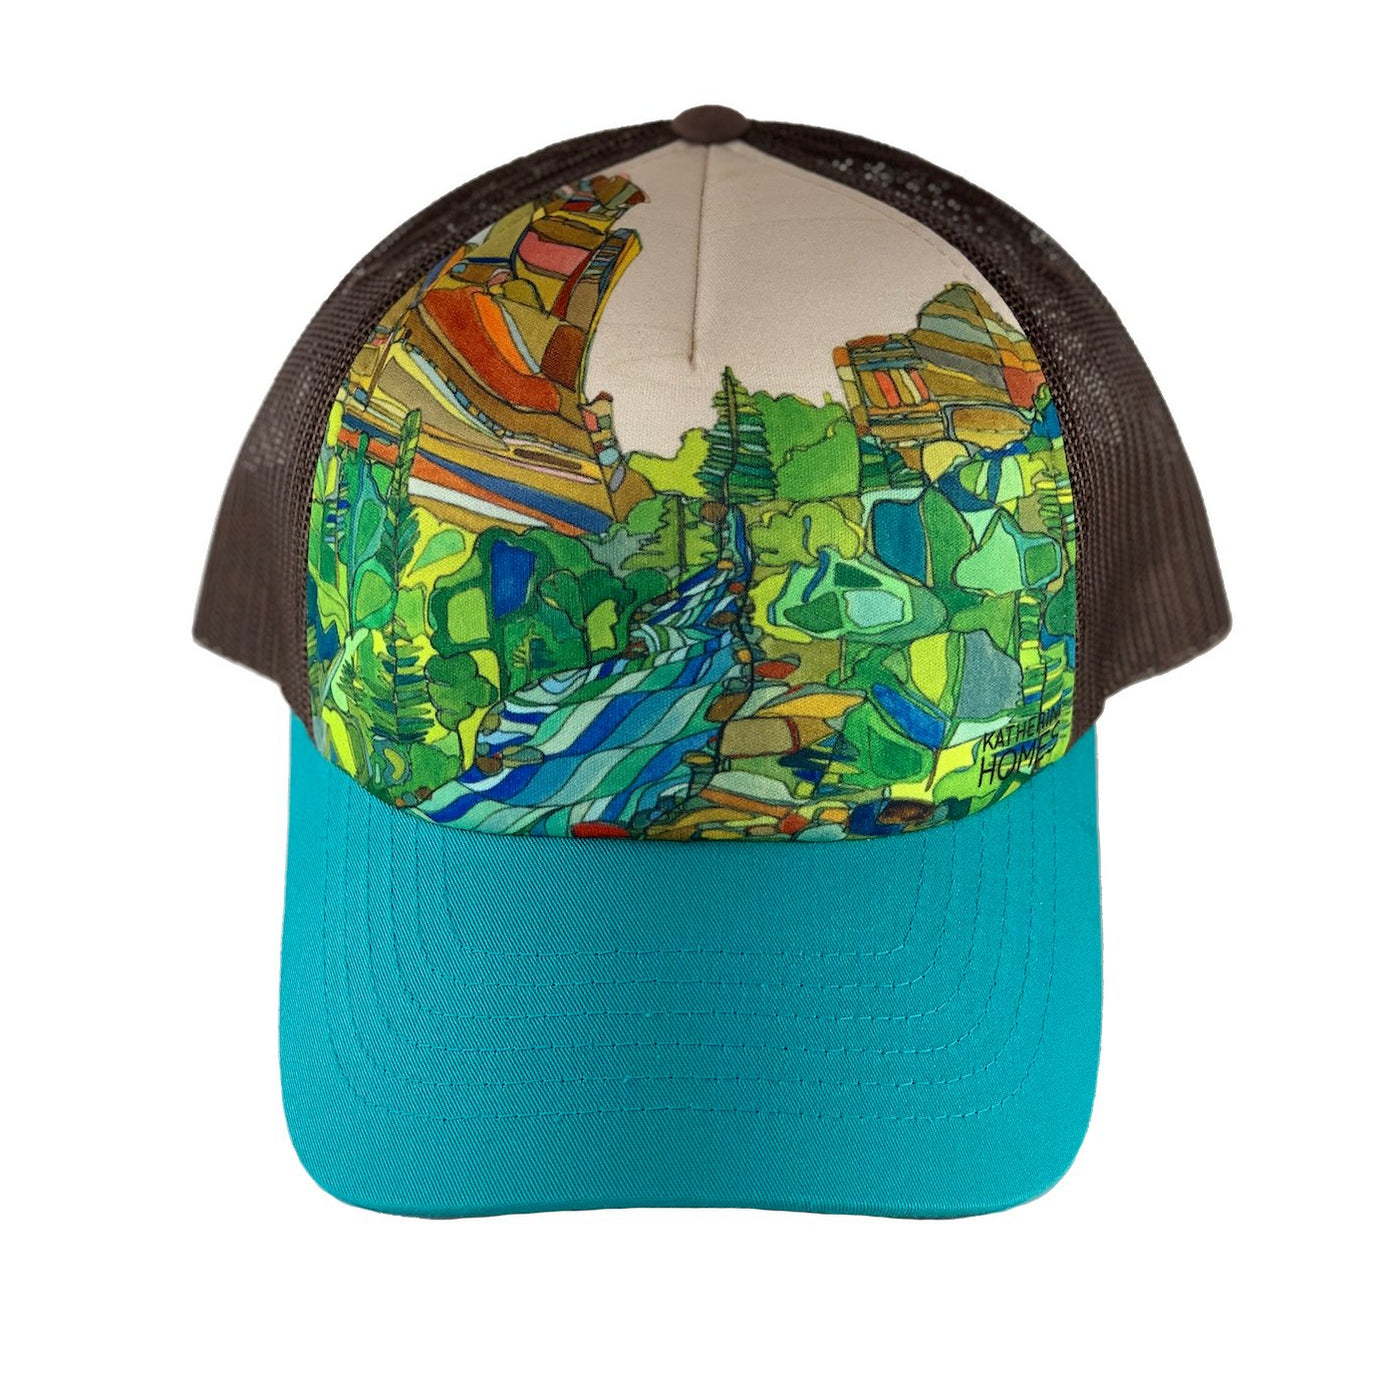 Katherine Homes Eldorado Canyon Trucker Hat | Turquoise and Brown